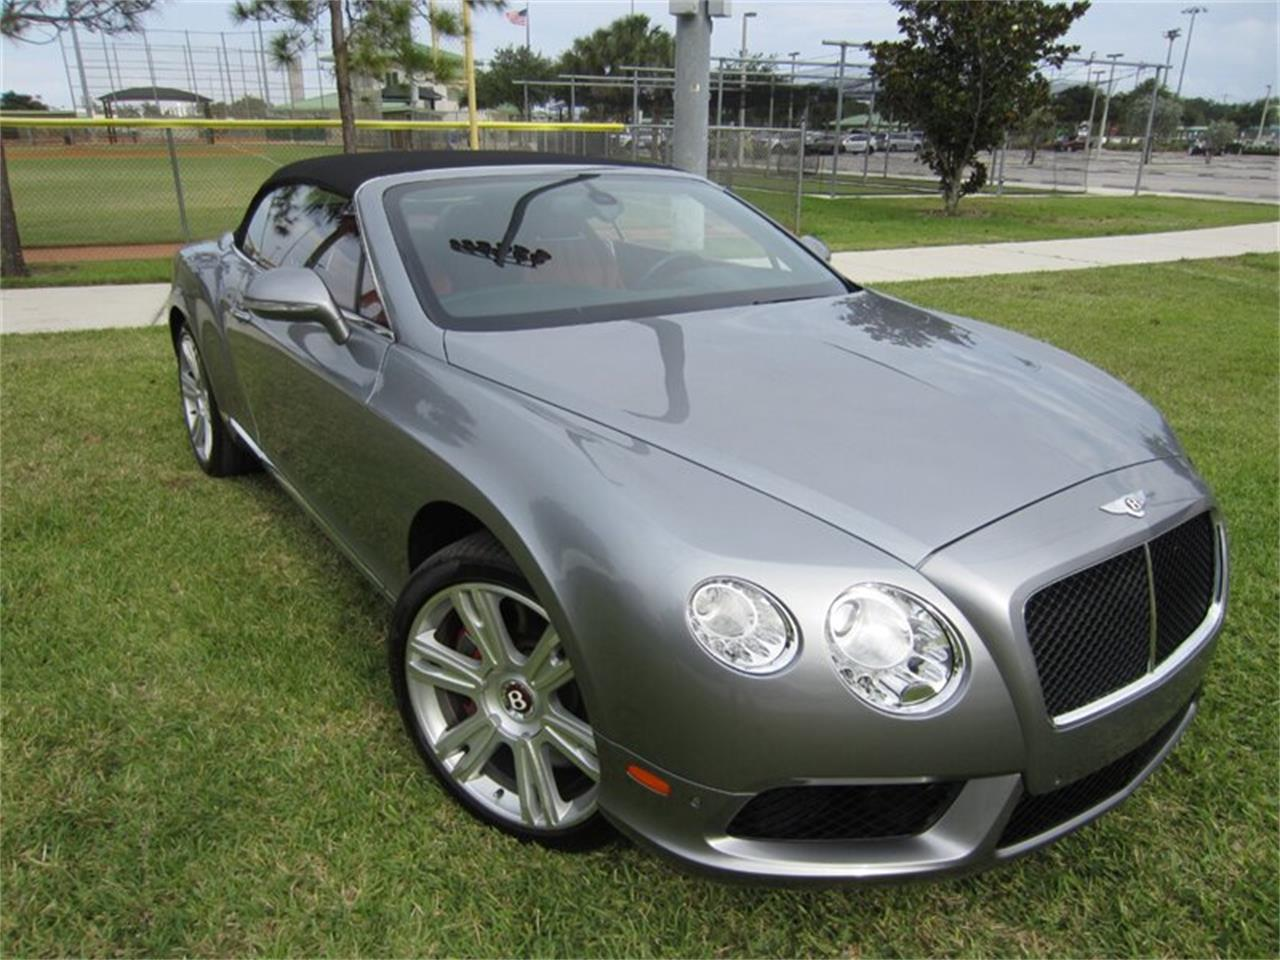 2013 Bentley Continental GTC V8 for sale in Delray Beach, FL – photo 20